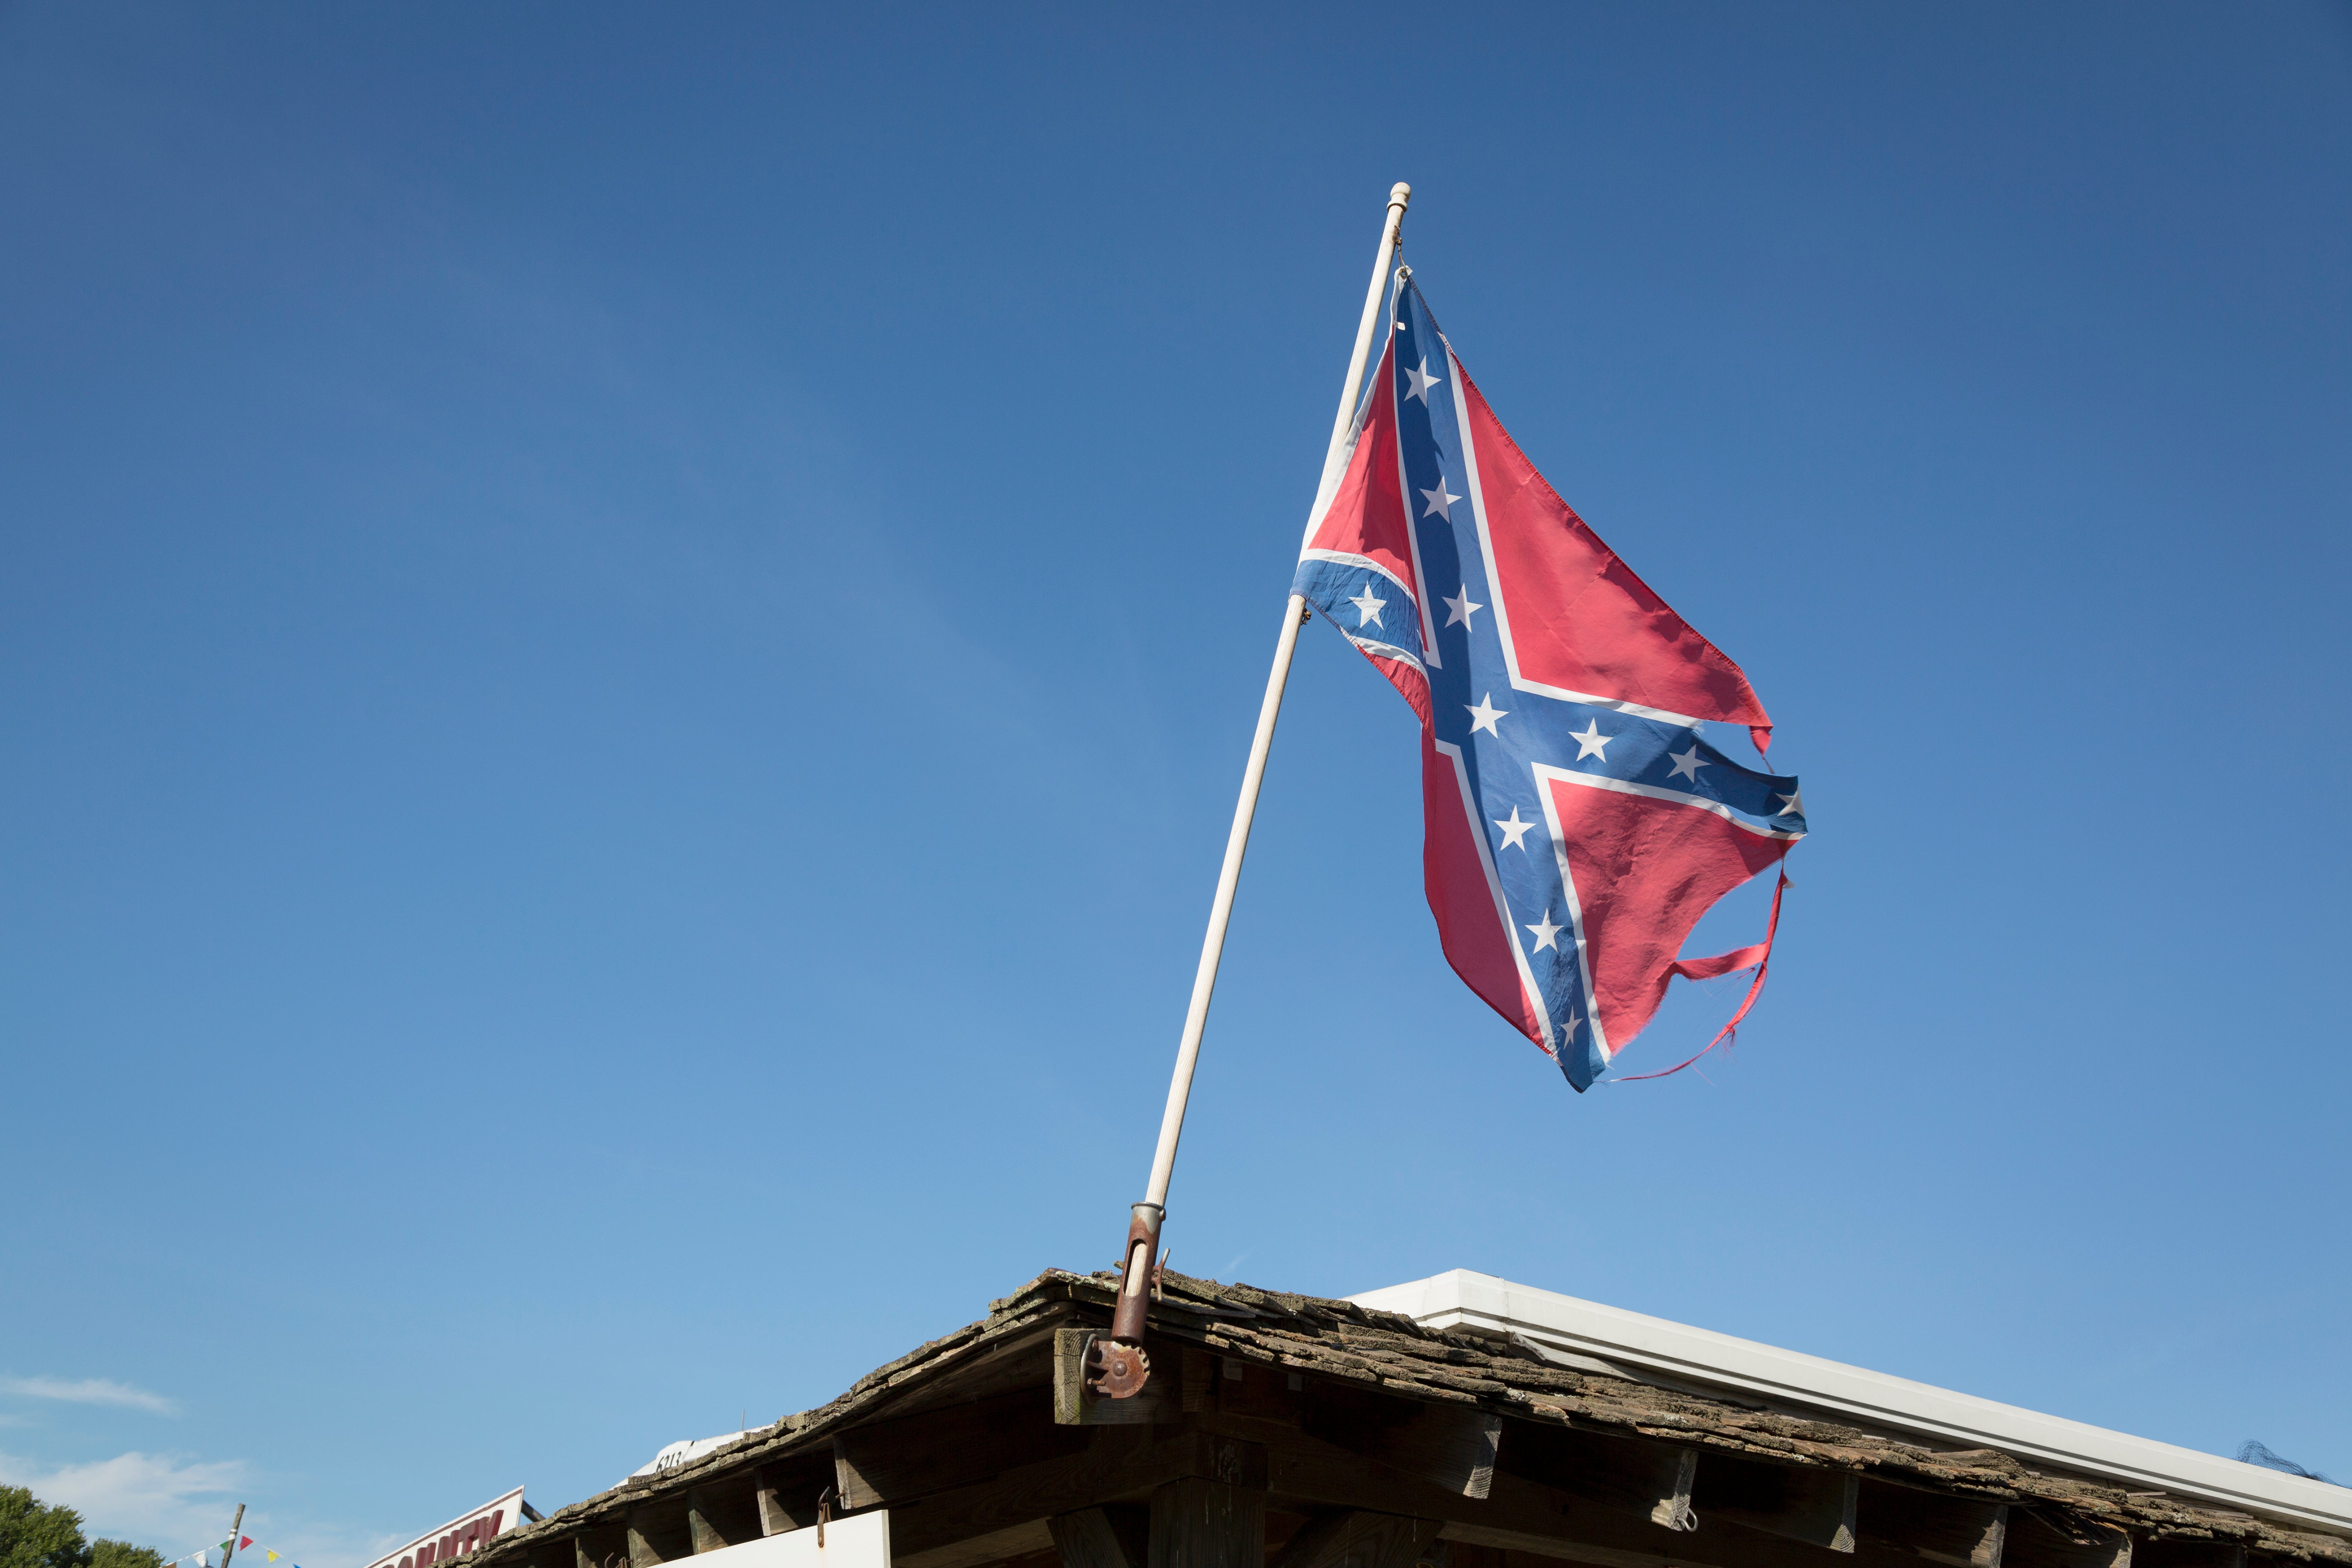 American University Targeted In Racially-Motivated Attack Using Confederate Flags